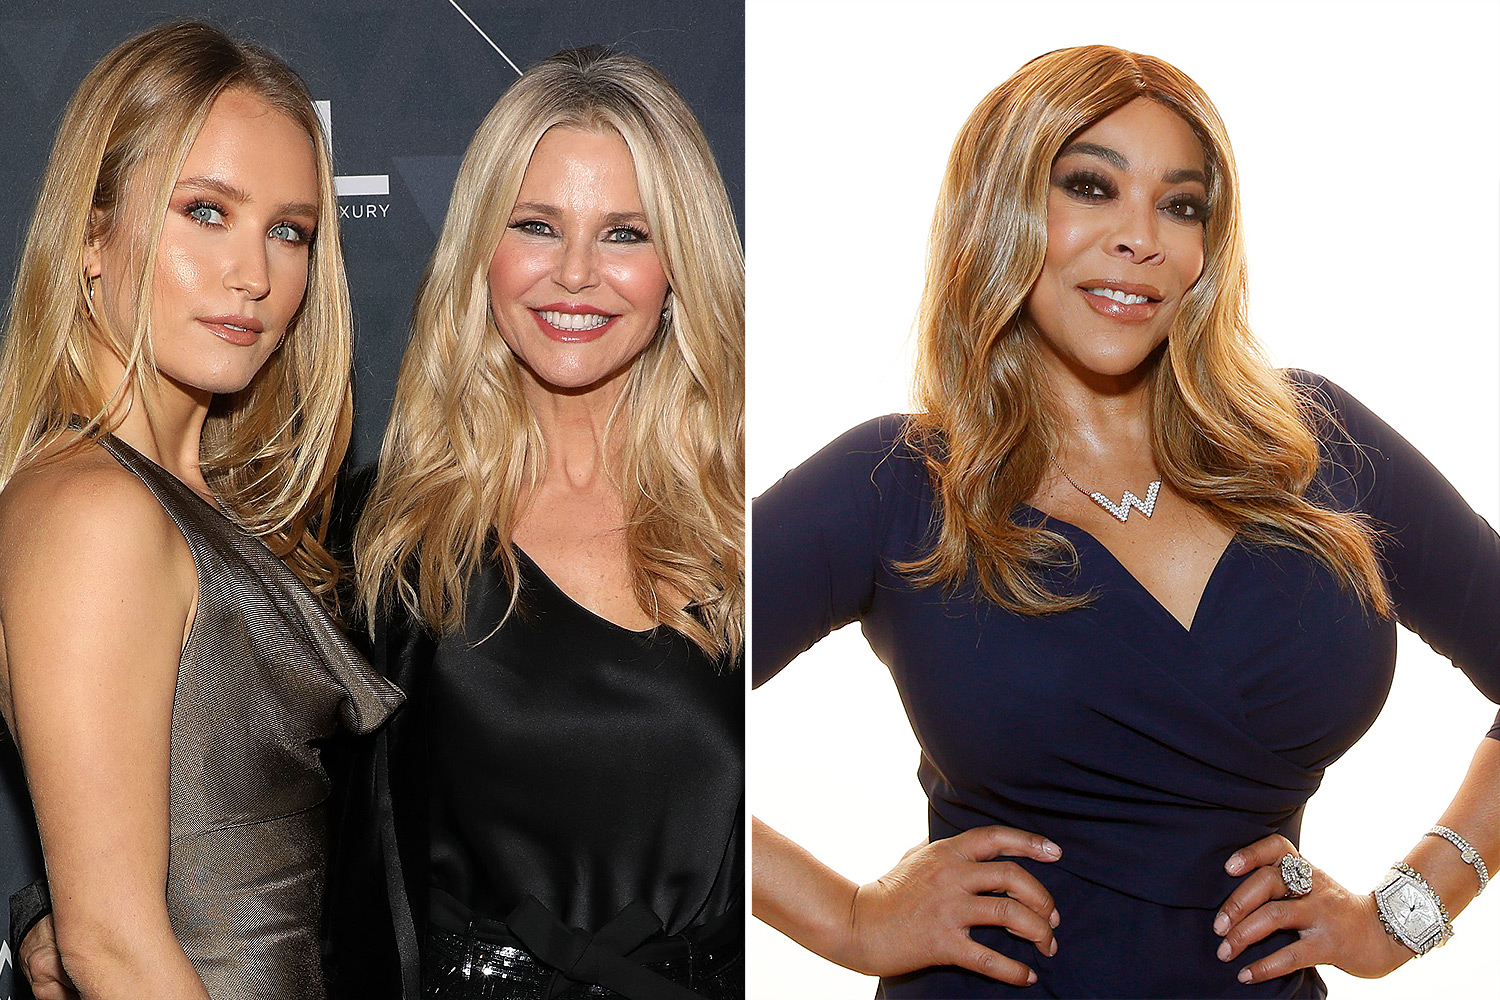 Sailor Brinkley-Cook and Christie Brinkley and Wendy Williams